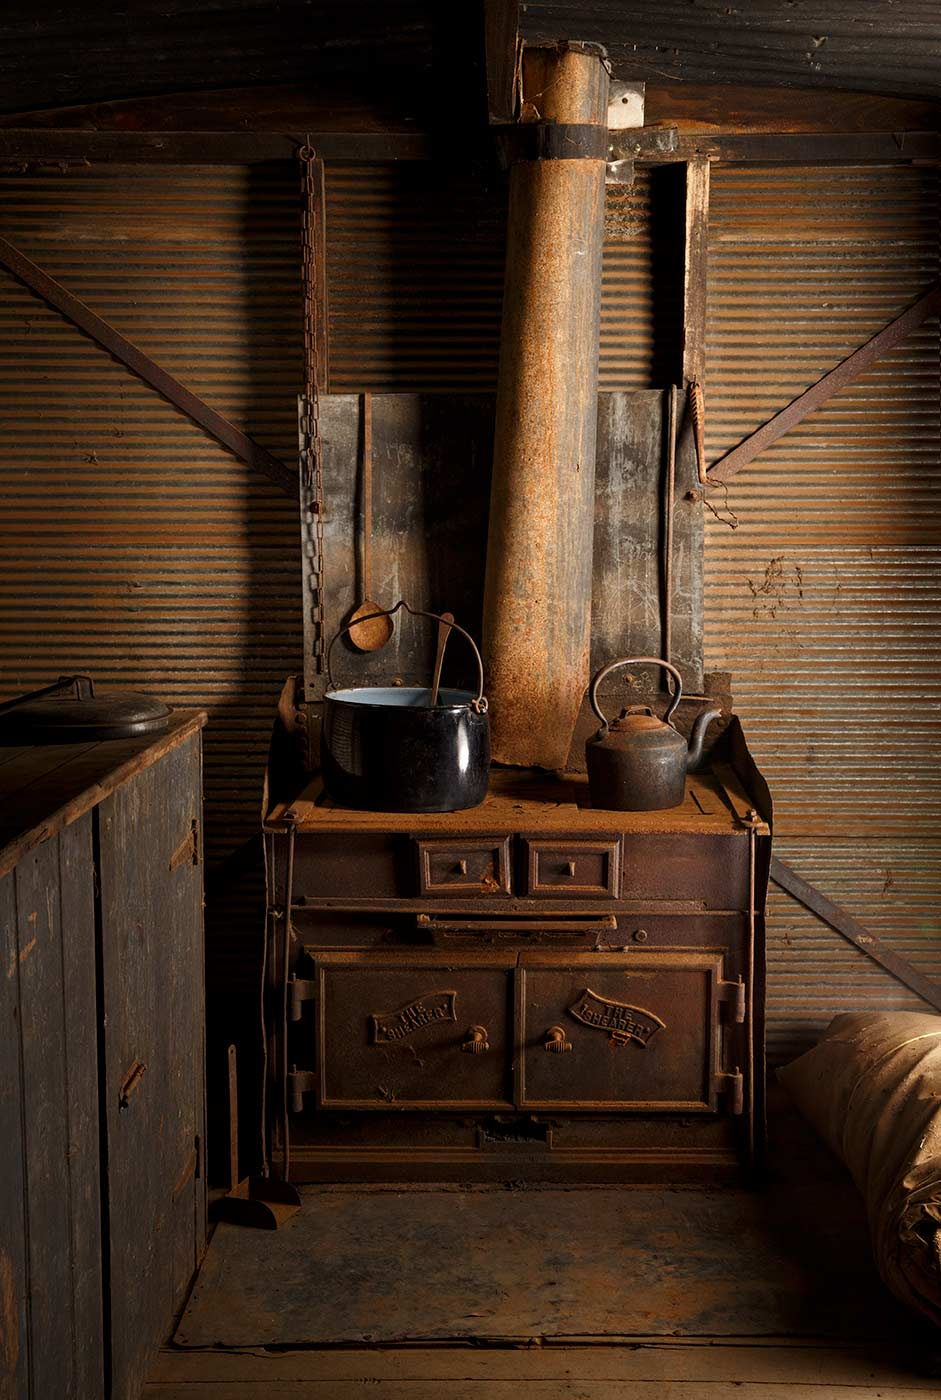 A cook's galley in the form of a metal-clad, timber and iron-framed box raised on wagon wheels. This view is of the wood-fired stove with pan and kettle seated on top. - click to view larger image